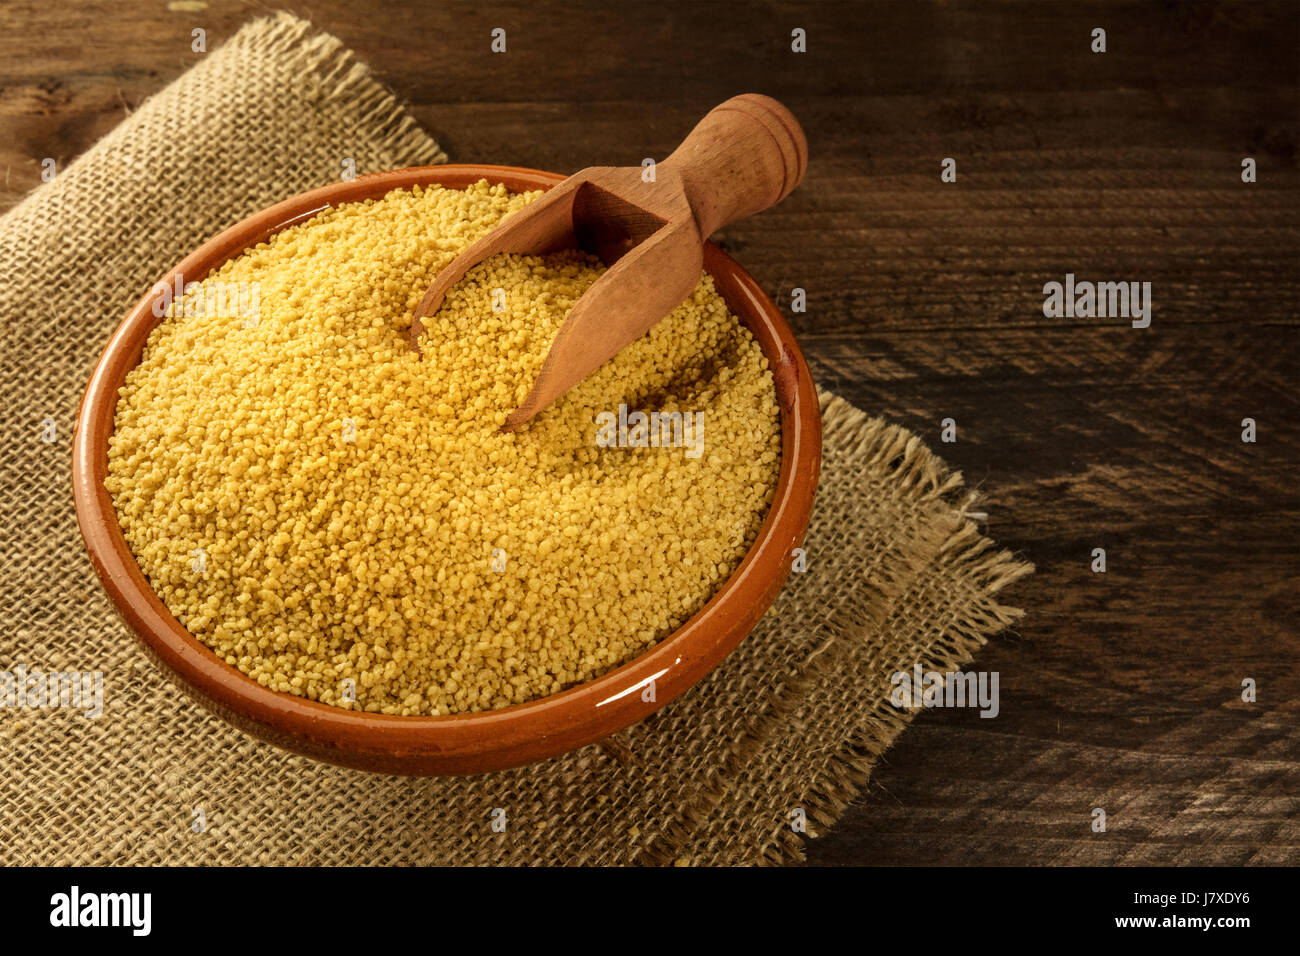 Bowl of couscous on rustic textures with copyspace - Stock Image